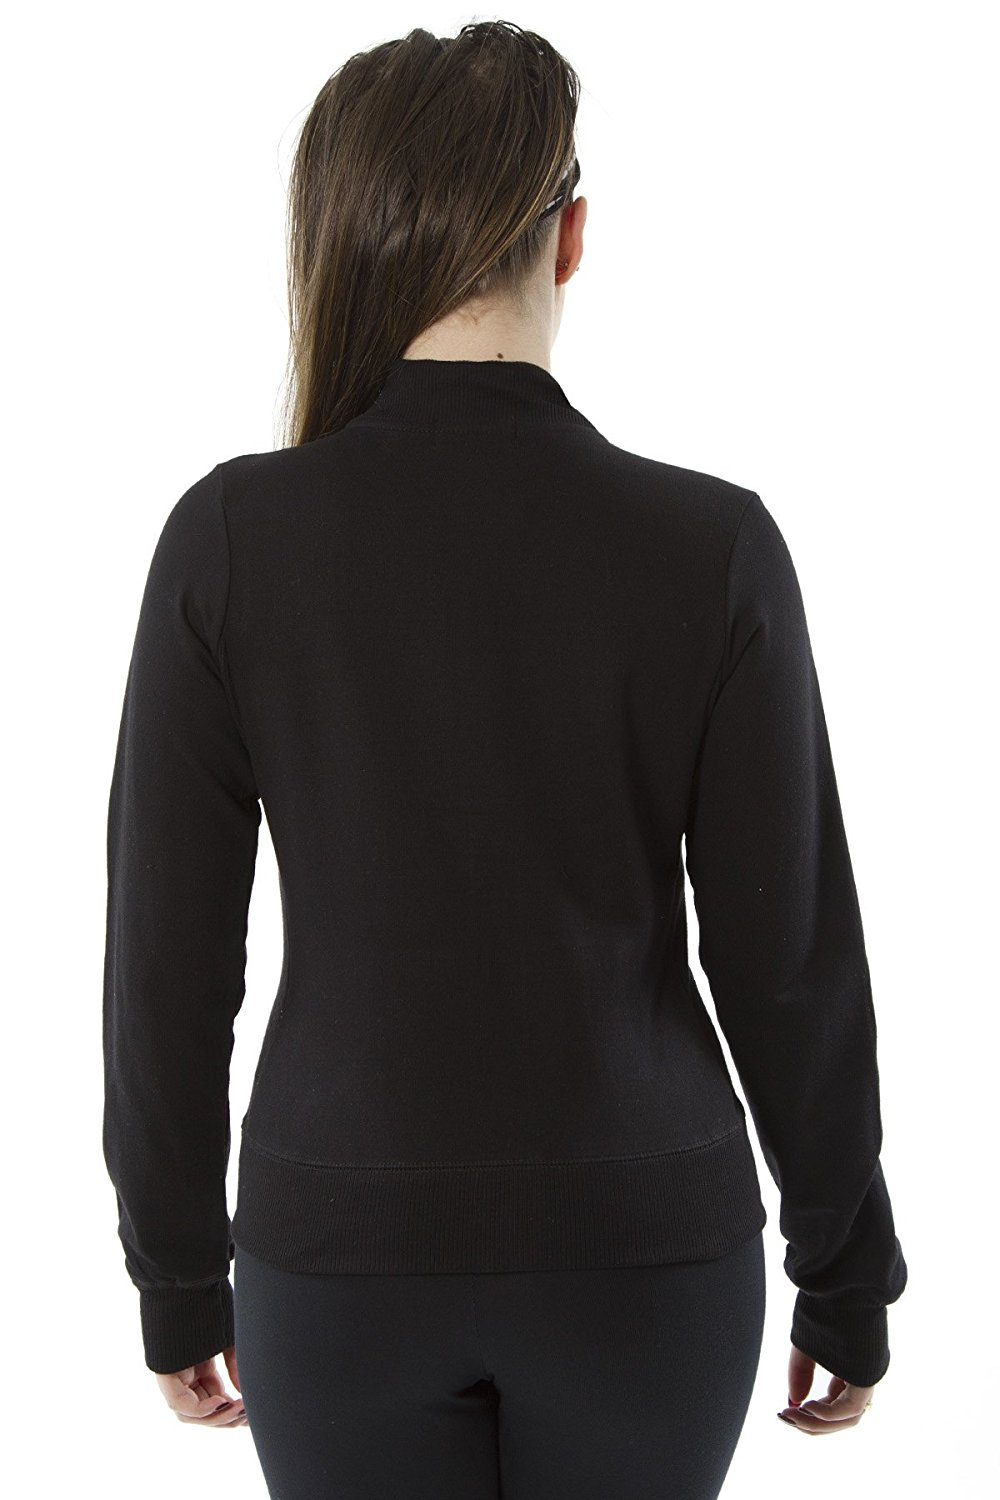 Rogue Zip-Up Track Style Jacket in Black a Long Sleeve Zipper Shirt for Women Small, Black